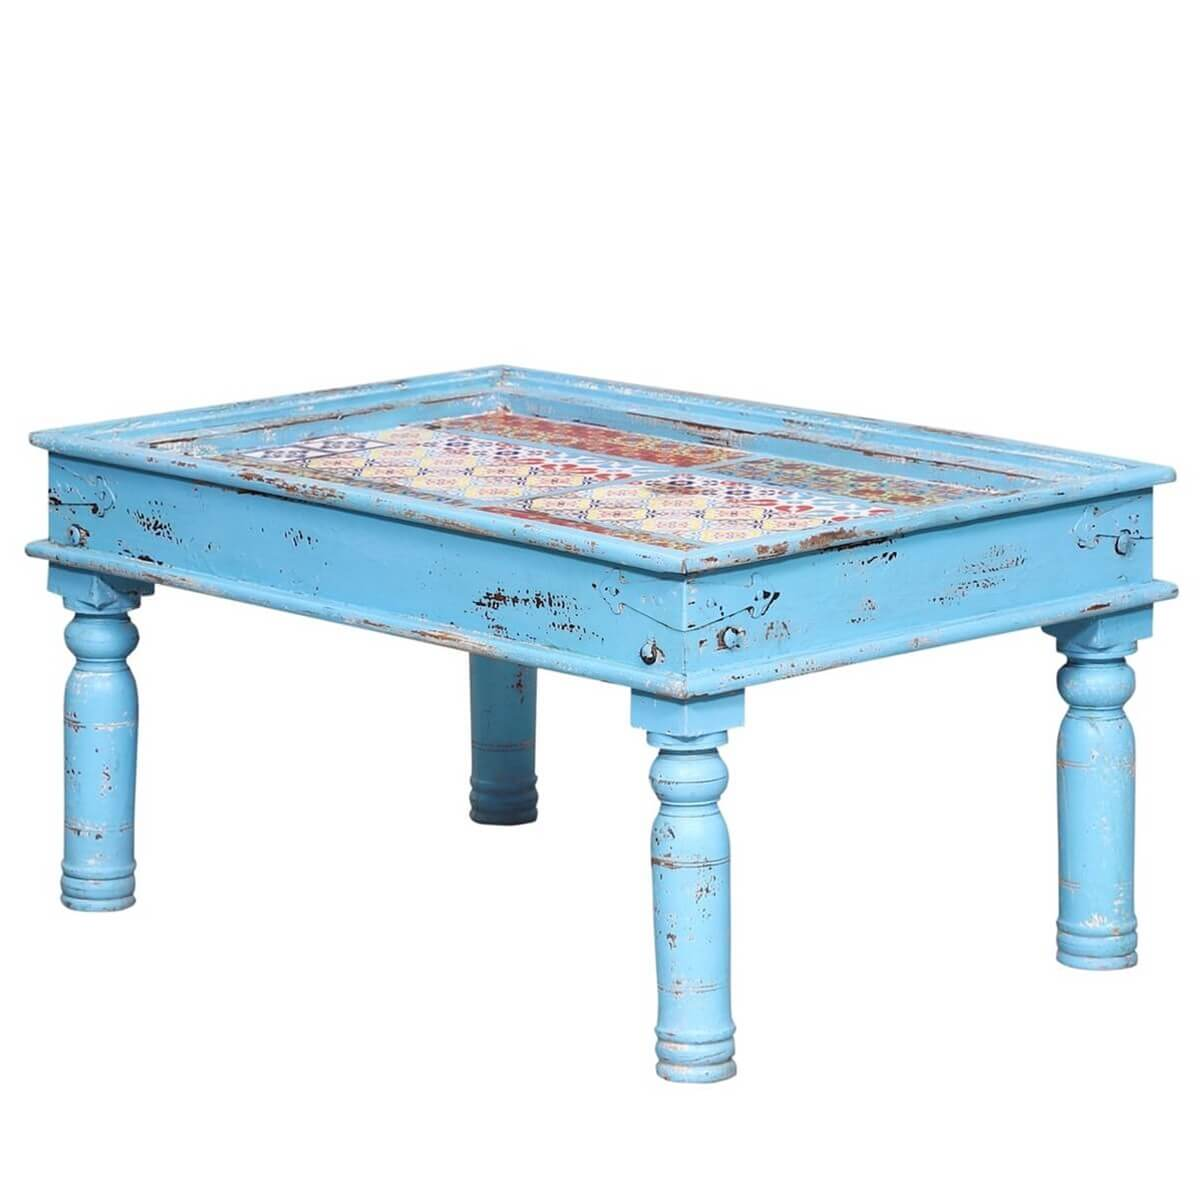 Rennert Distressed Blue Reclaimed Wood Tile Fitted Coffee Table